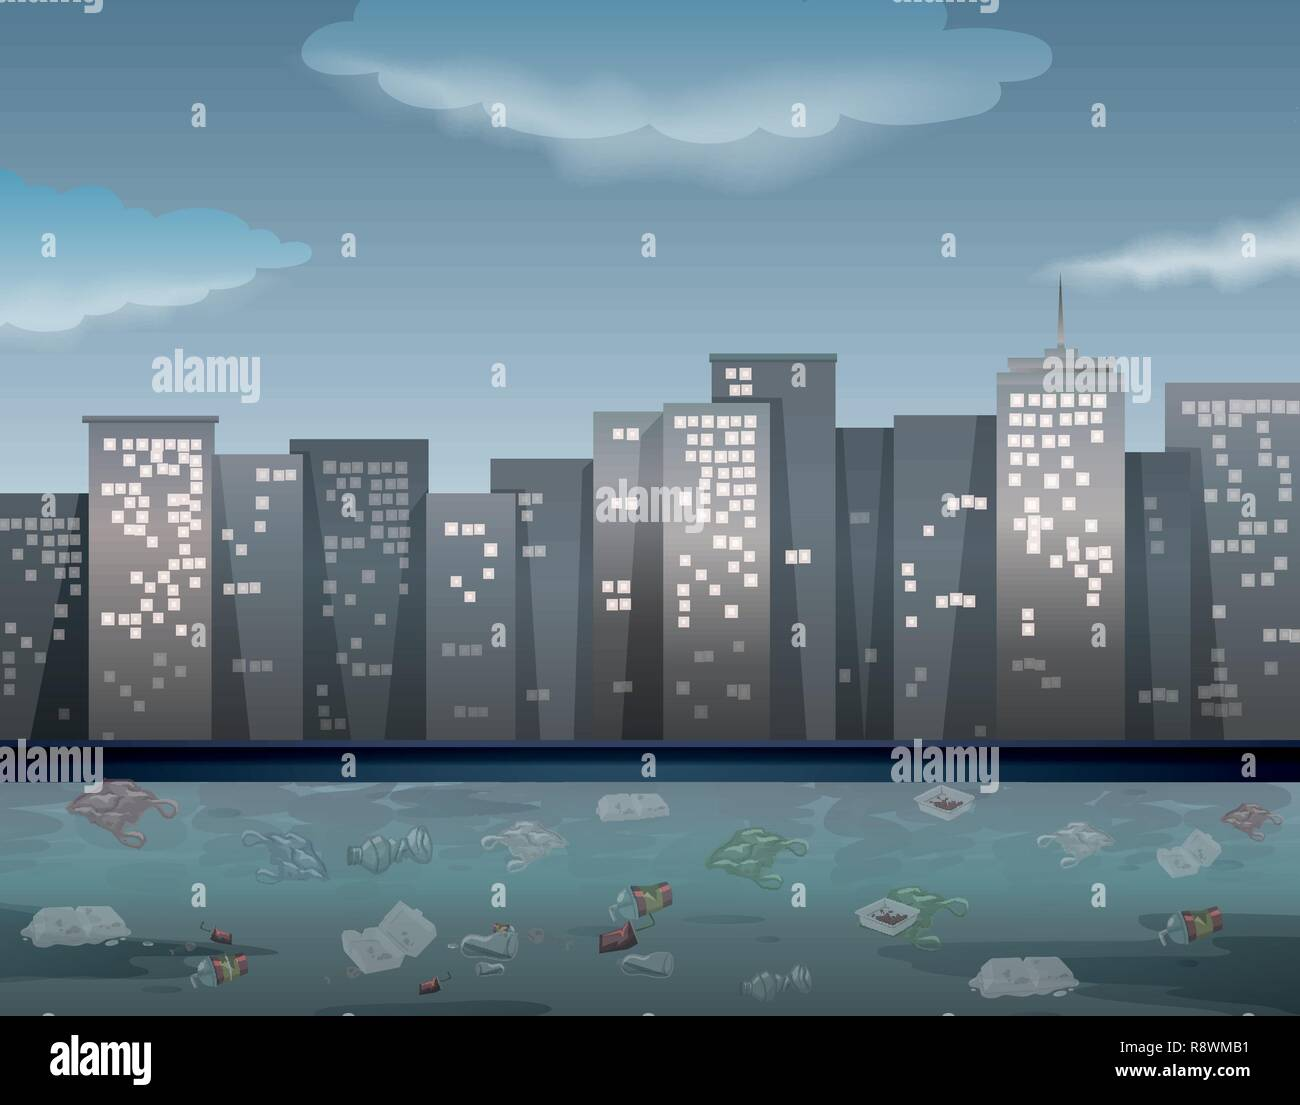 Water pollution in urban town illustration - Stock Vector